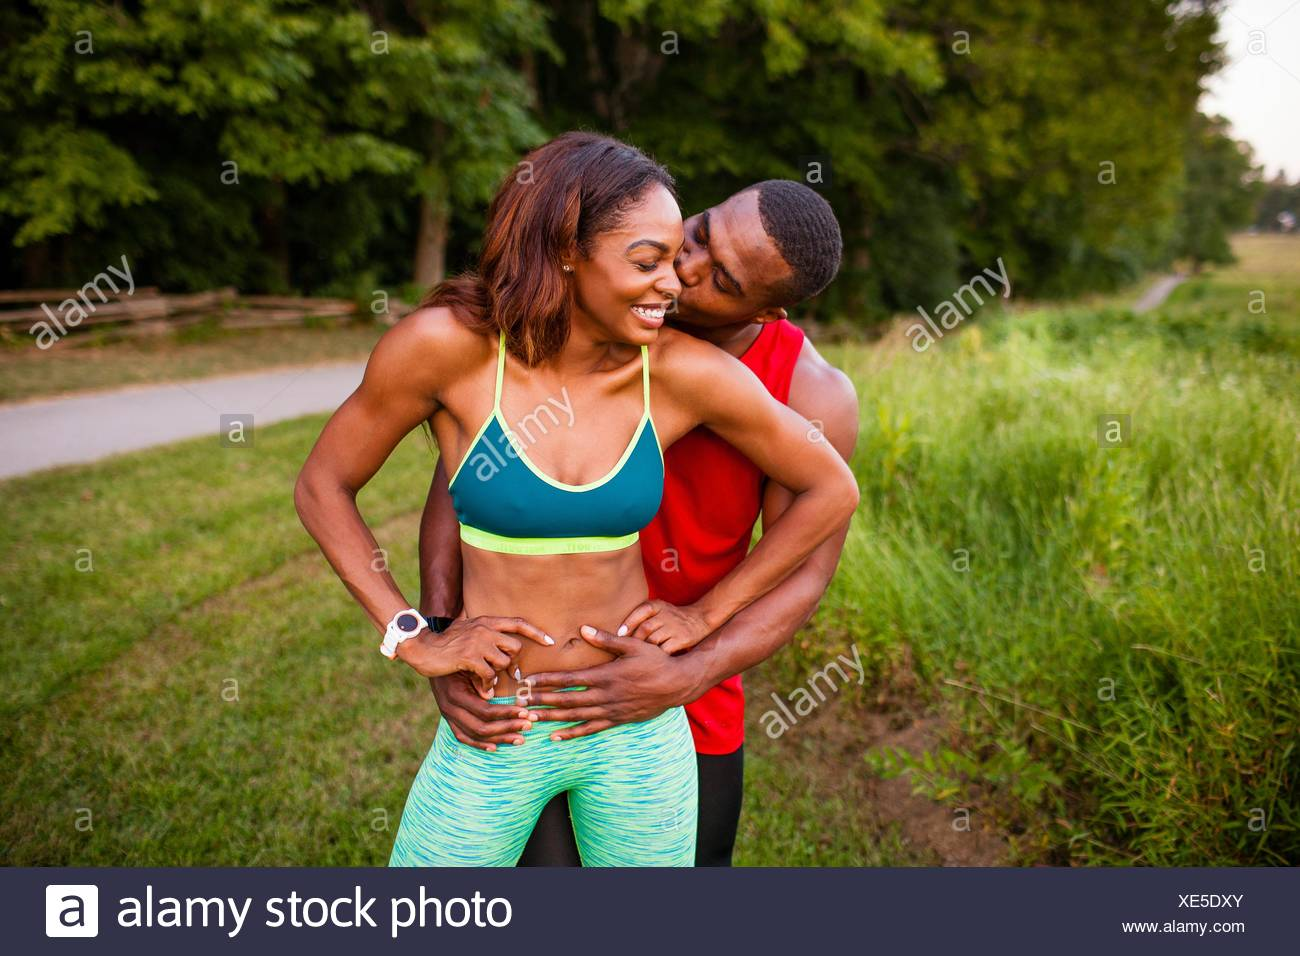 Portrait of romantic young couple training by rural road - Stock Image